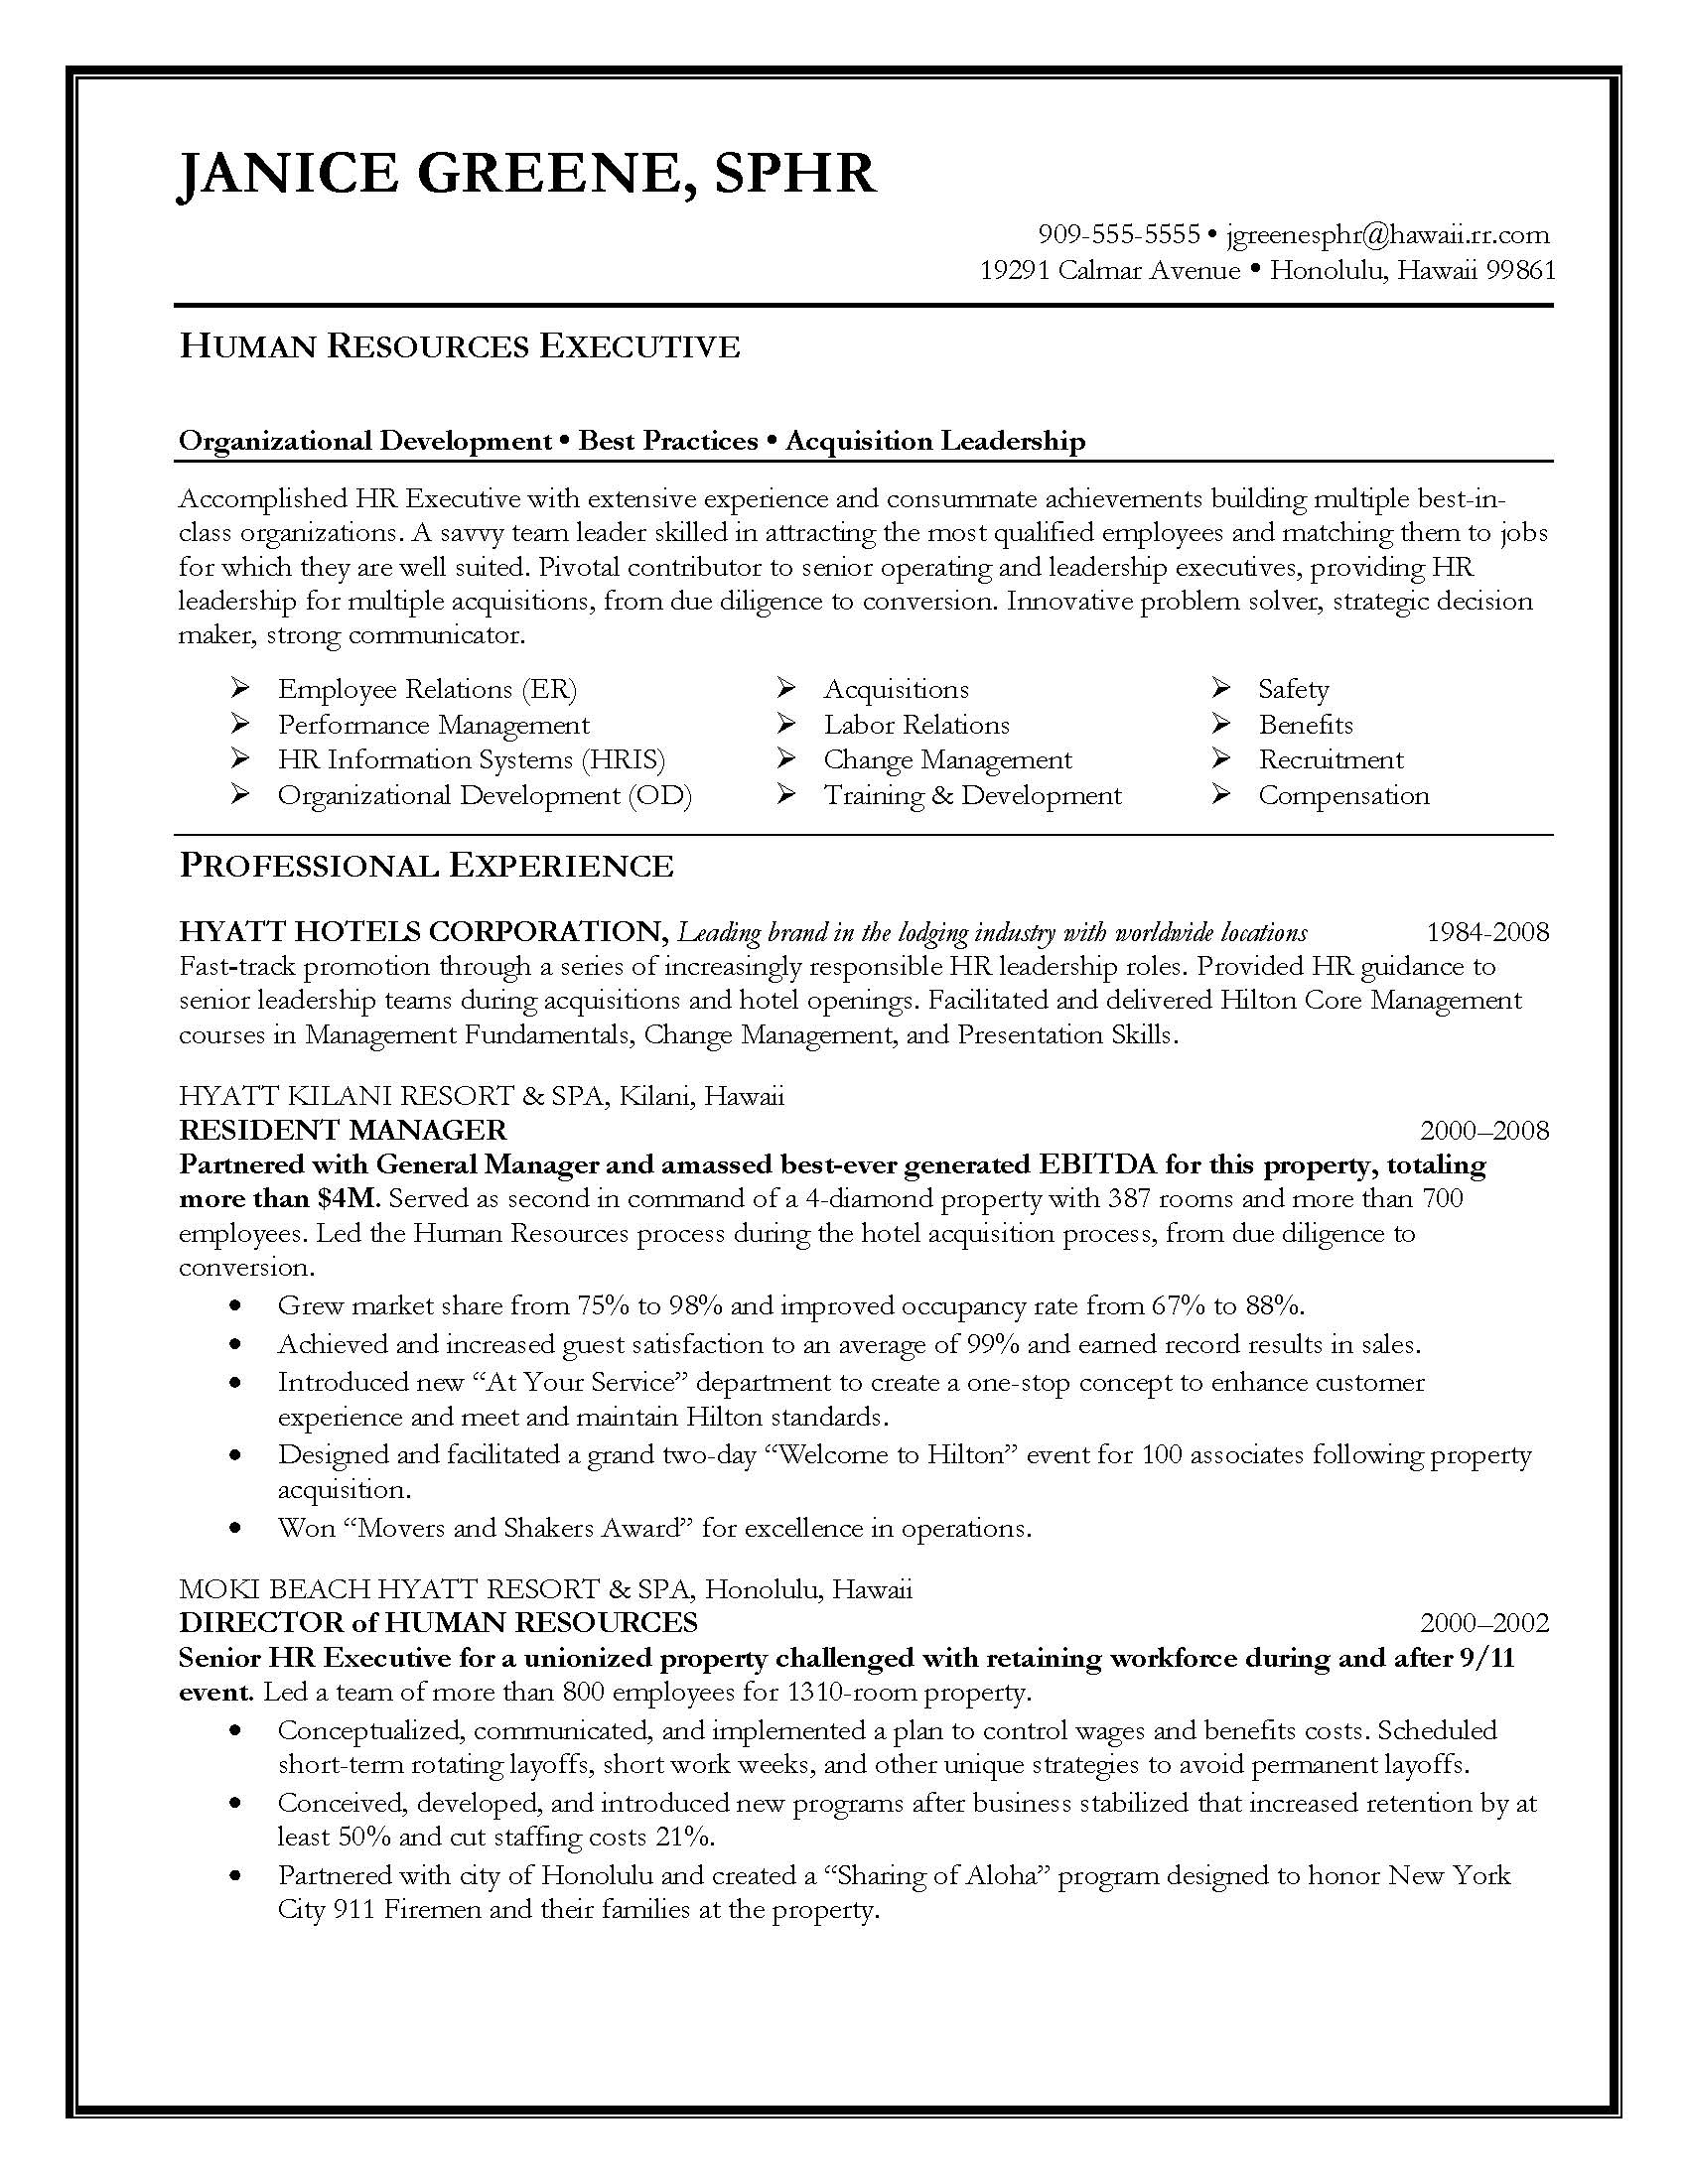 training coordinator resume Dayjob